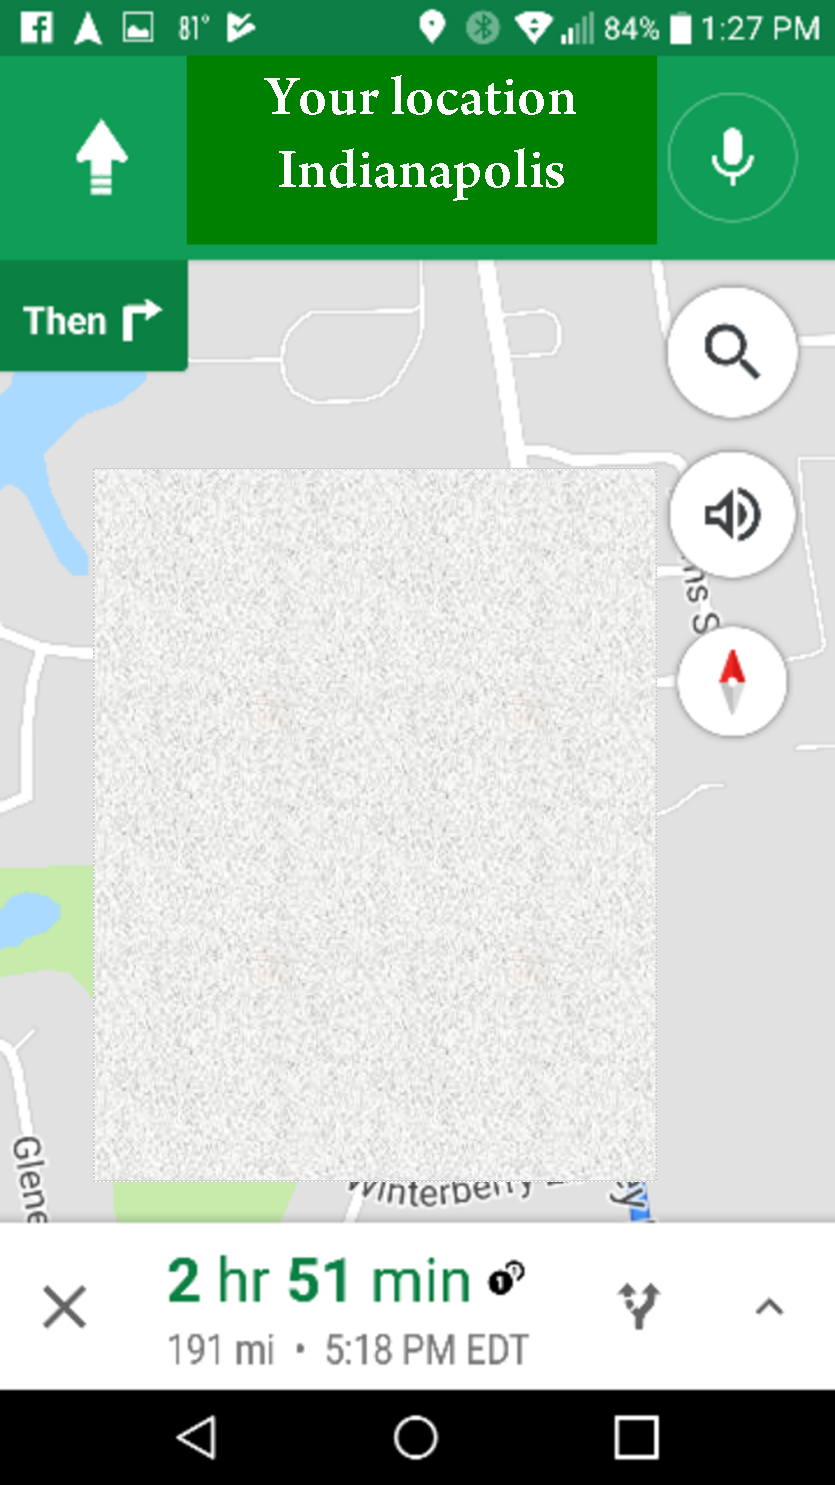 no small feet: thank you google maps!